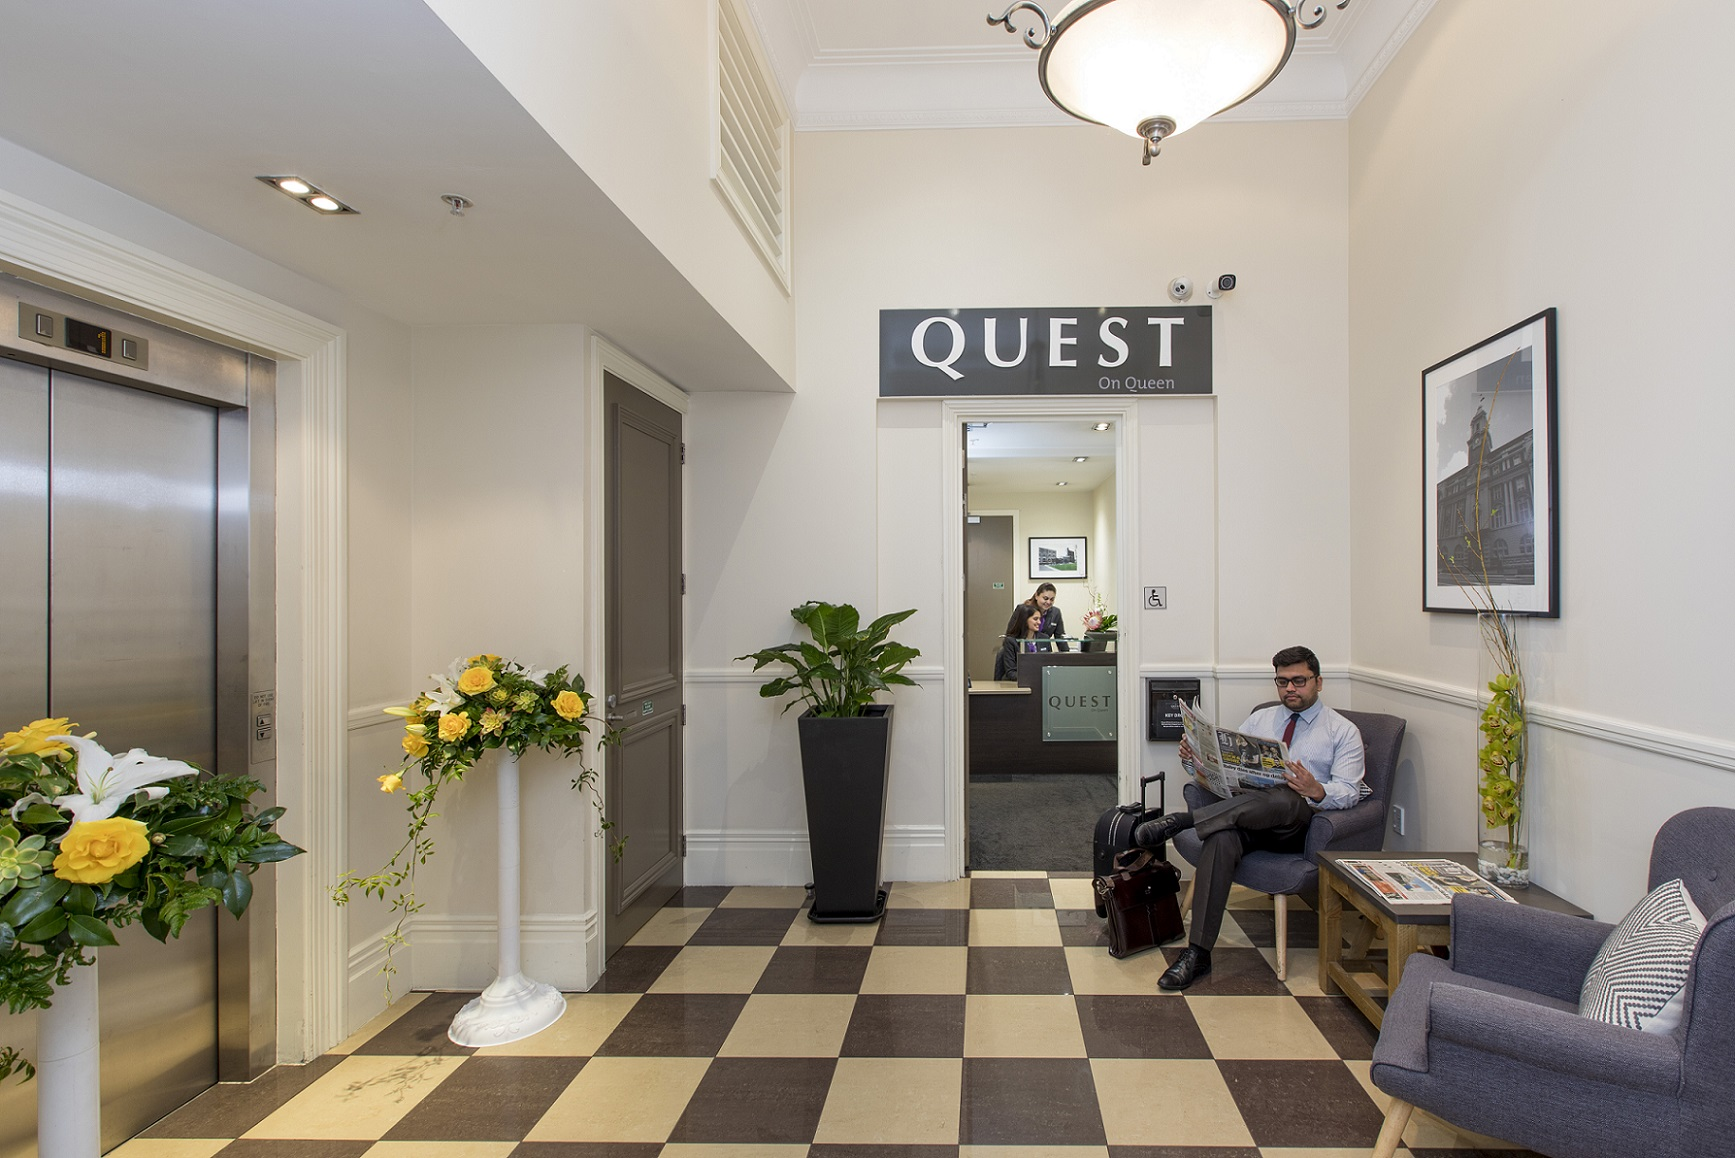 Lobby area at Quest on Queen